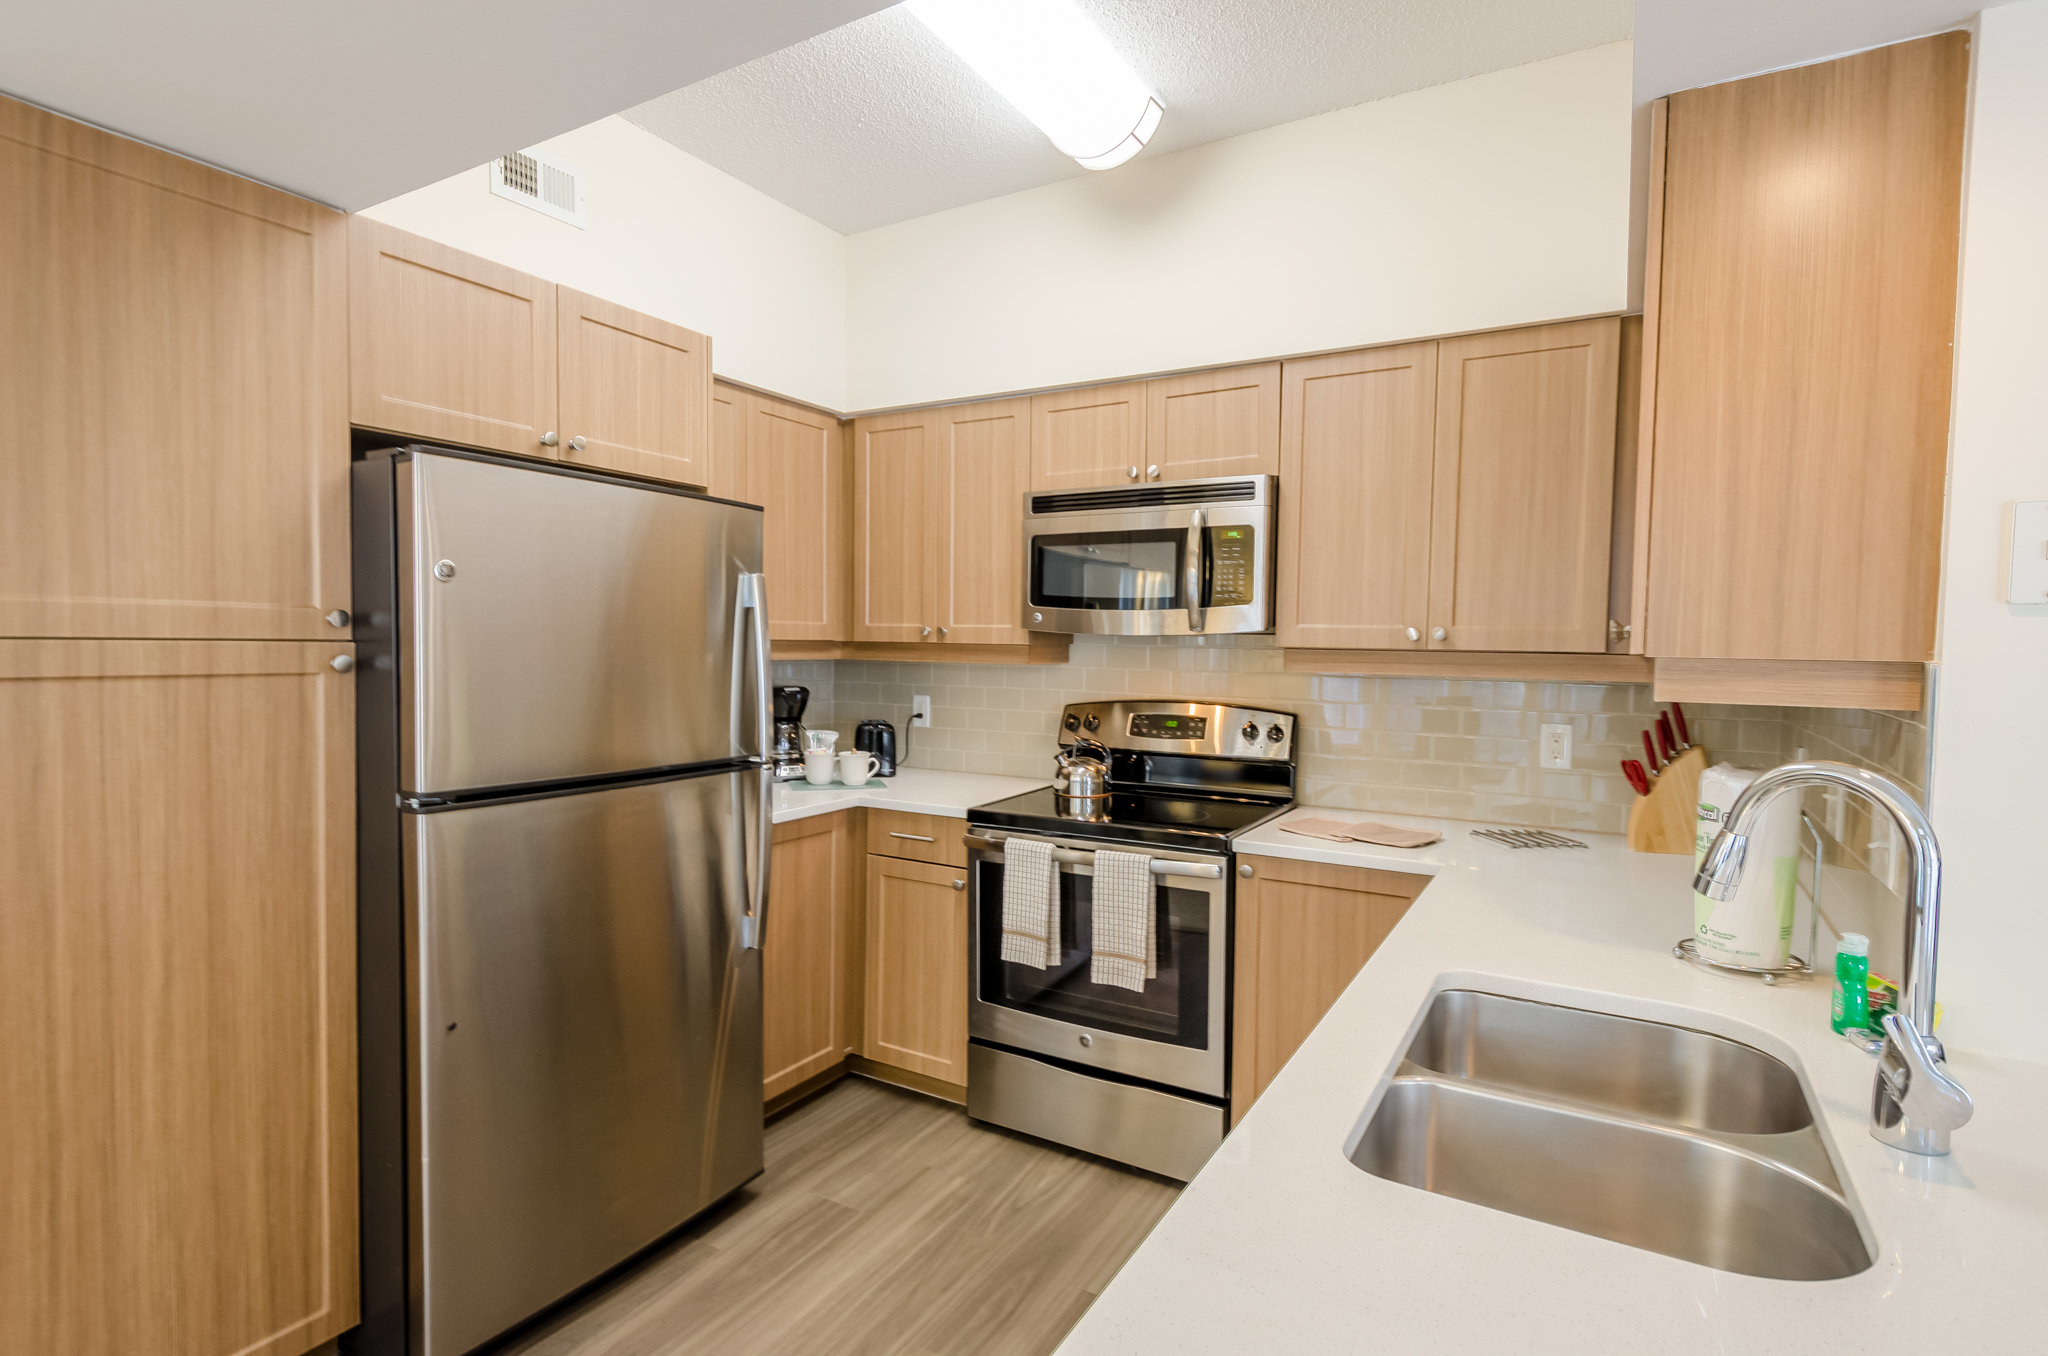 Avalon Bear Hill Compass Furnished Aparments In Waltham Ma